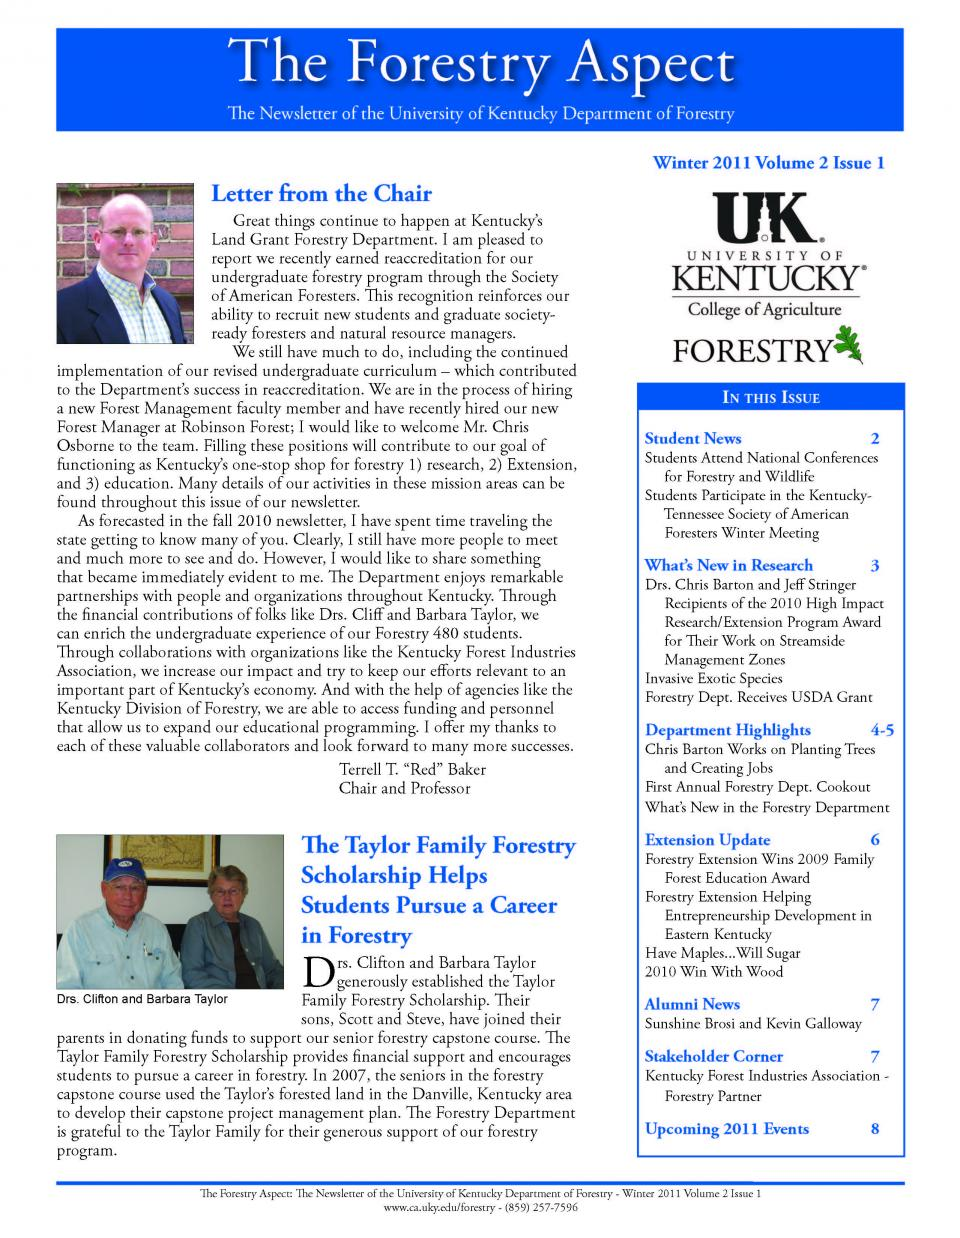 Cover page of the Department Newsletter - Winter 2011